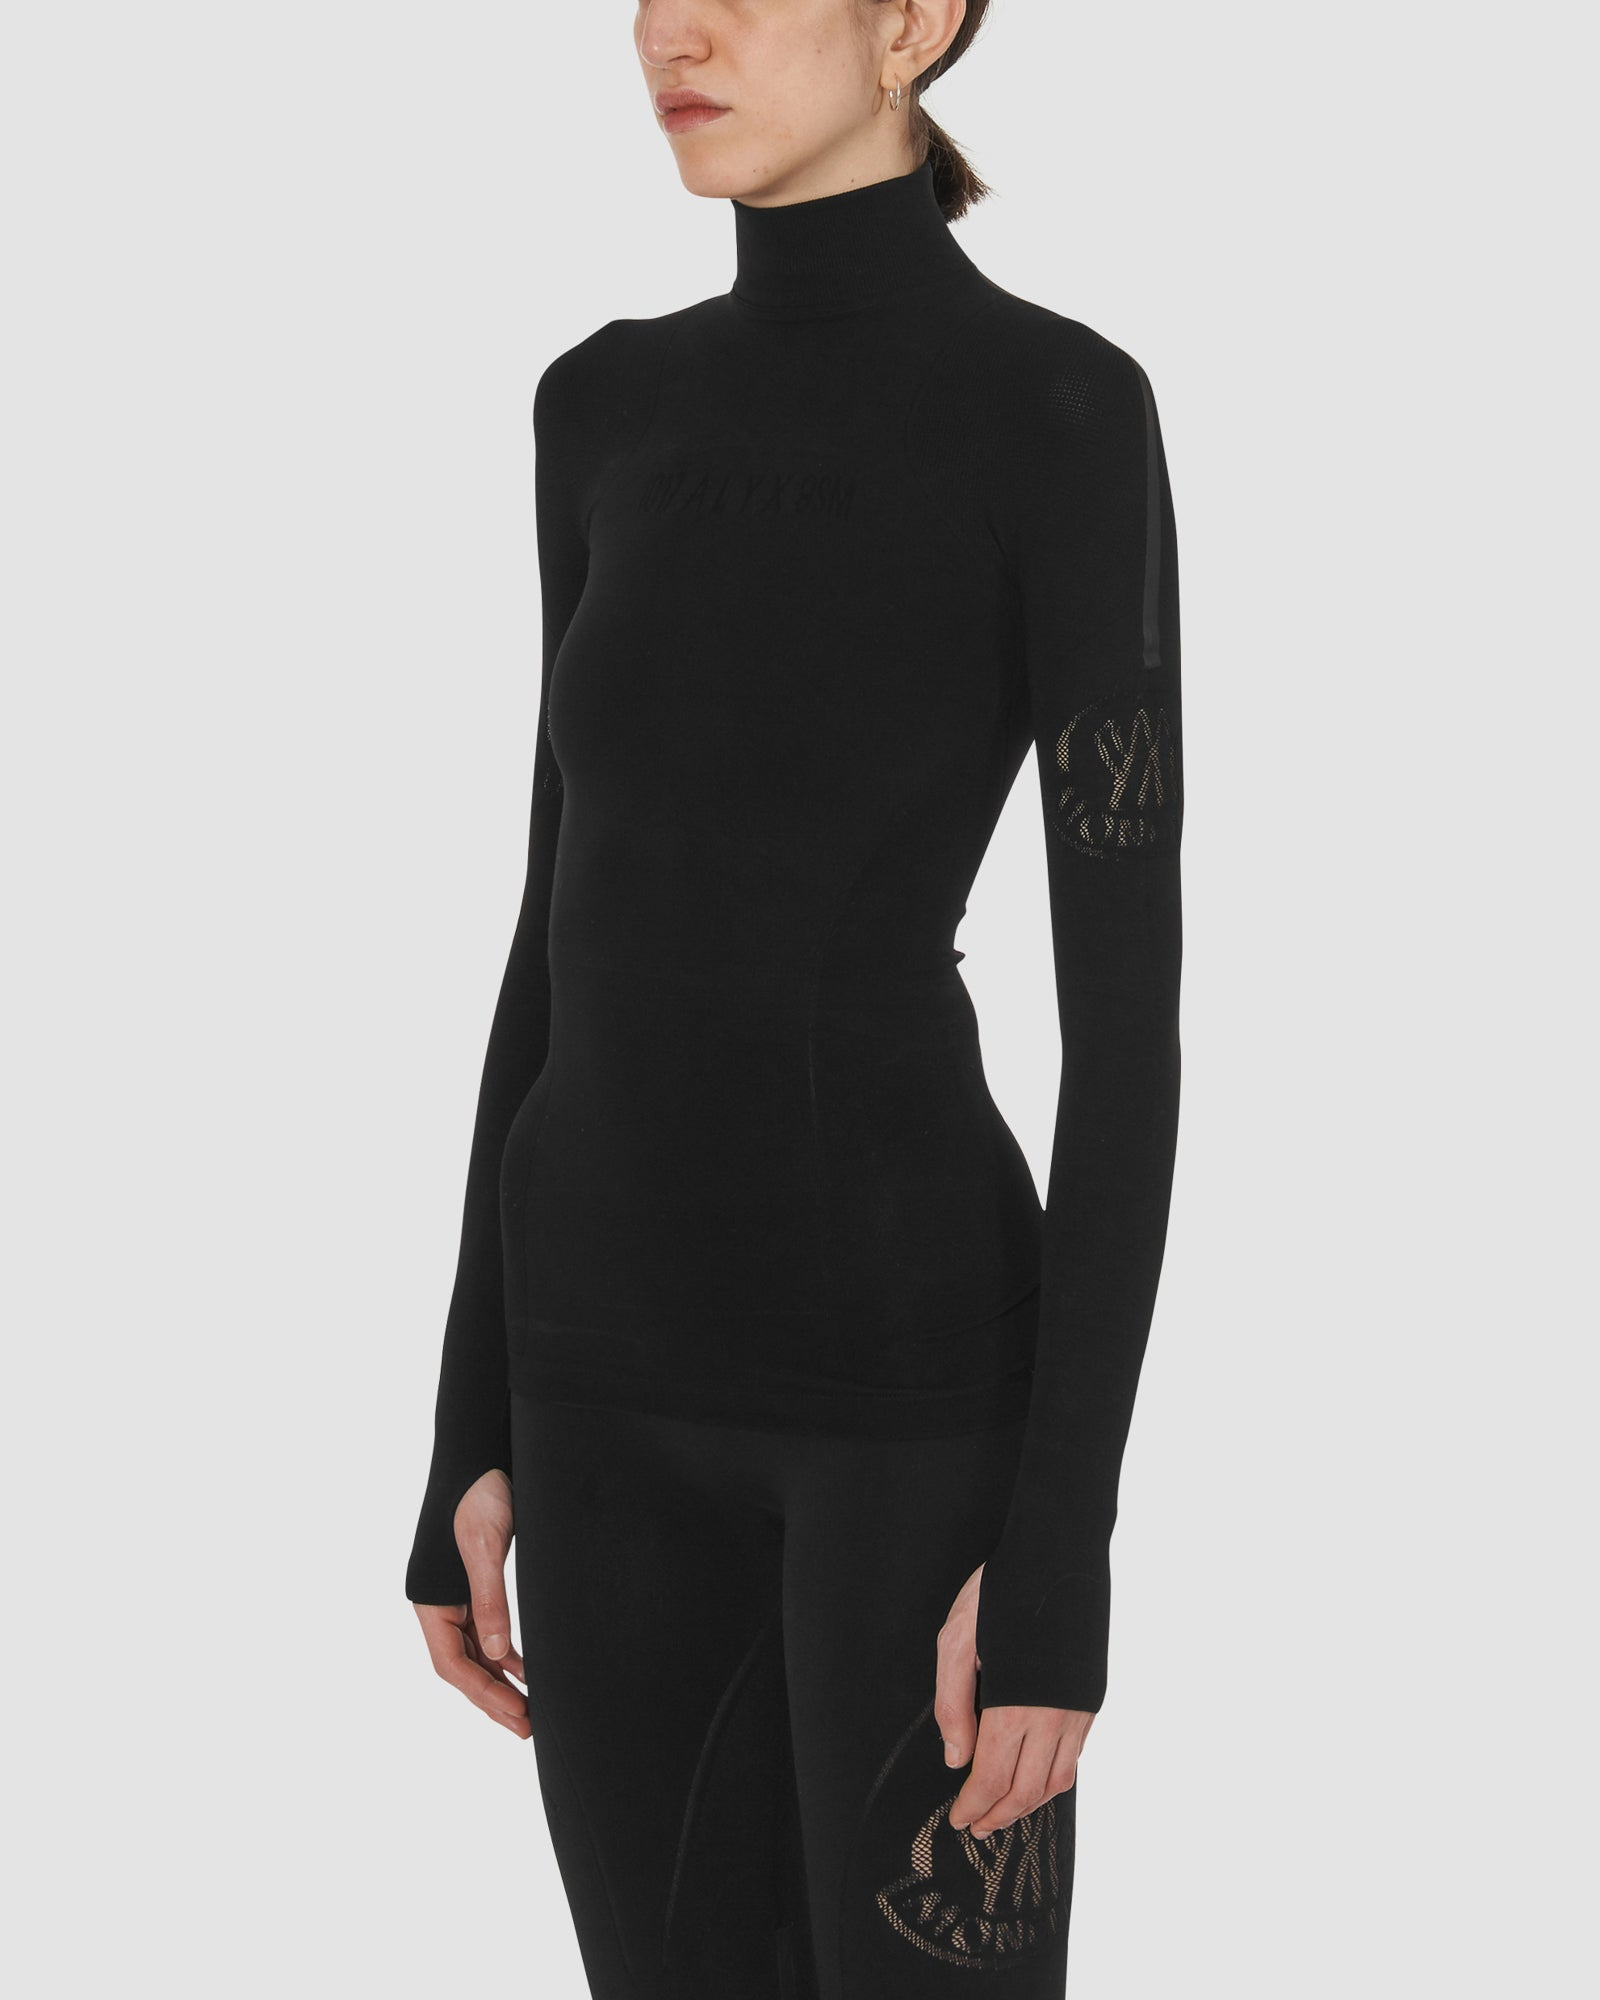 1017 ALYX 9SM | MONCLER JUMPER | Sweatshirt | BLACK, Google Shopping, Moncler, S20, T-SHIRTS, WOMEN